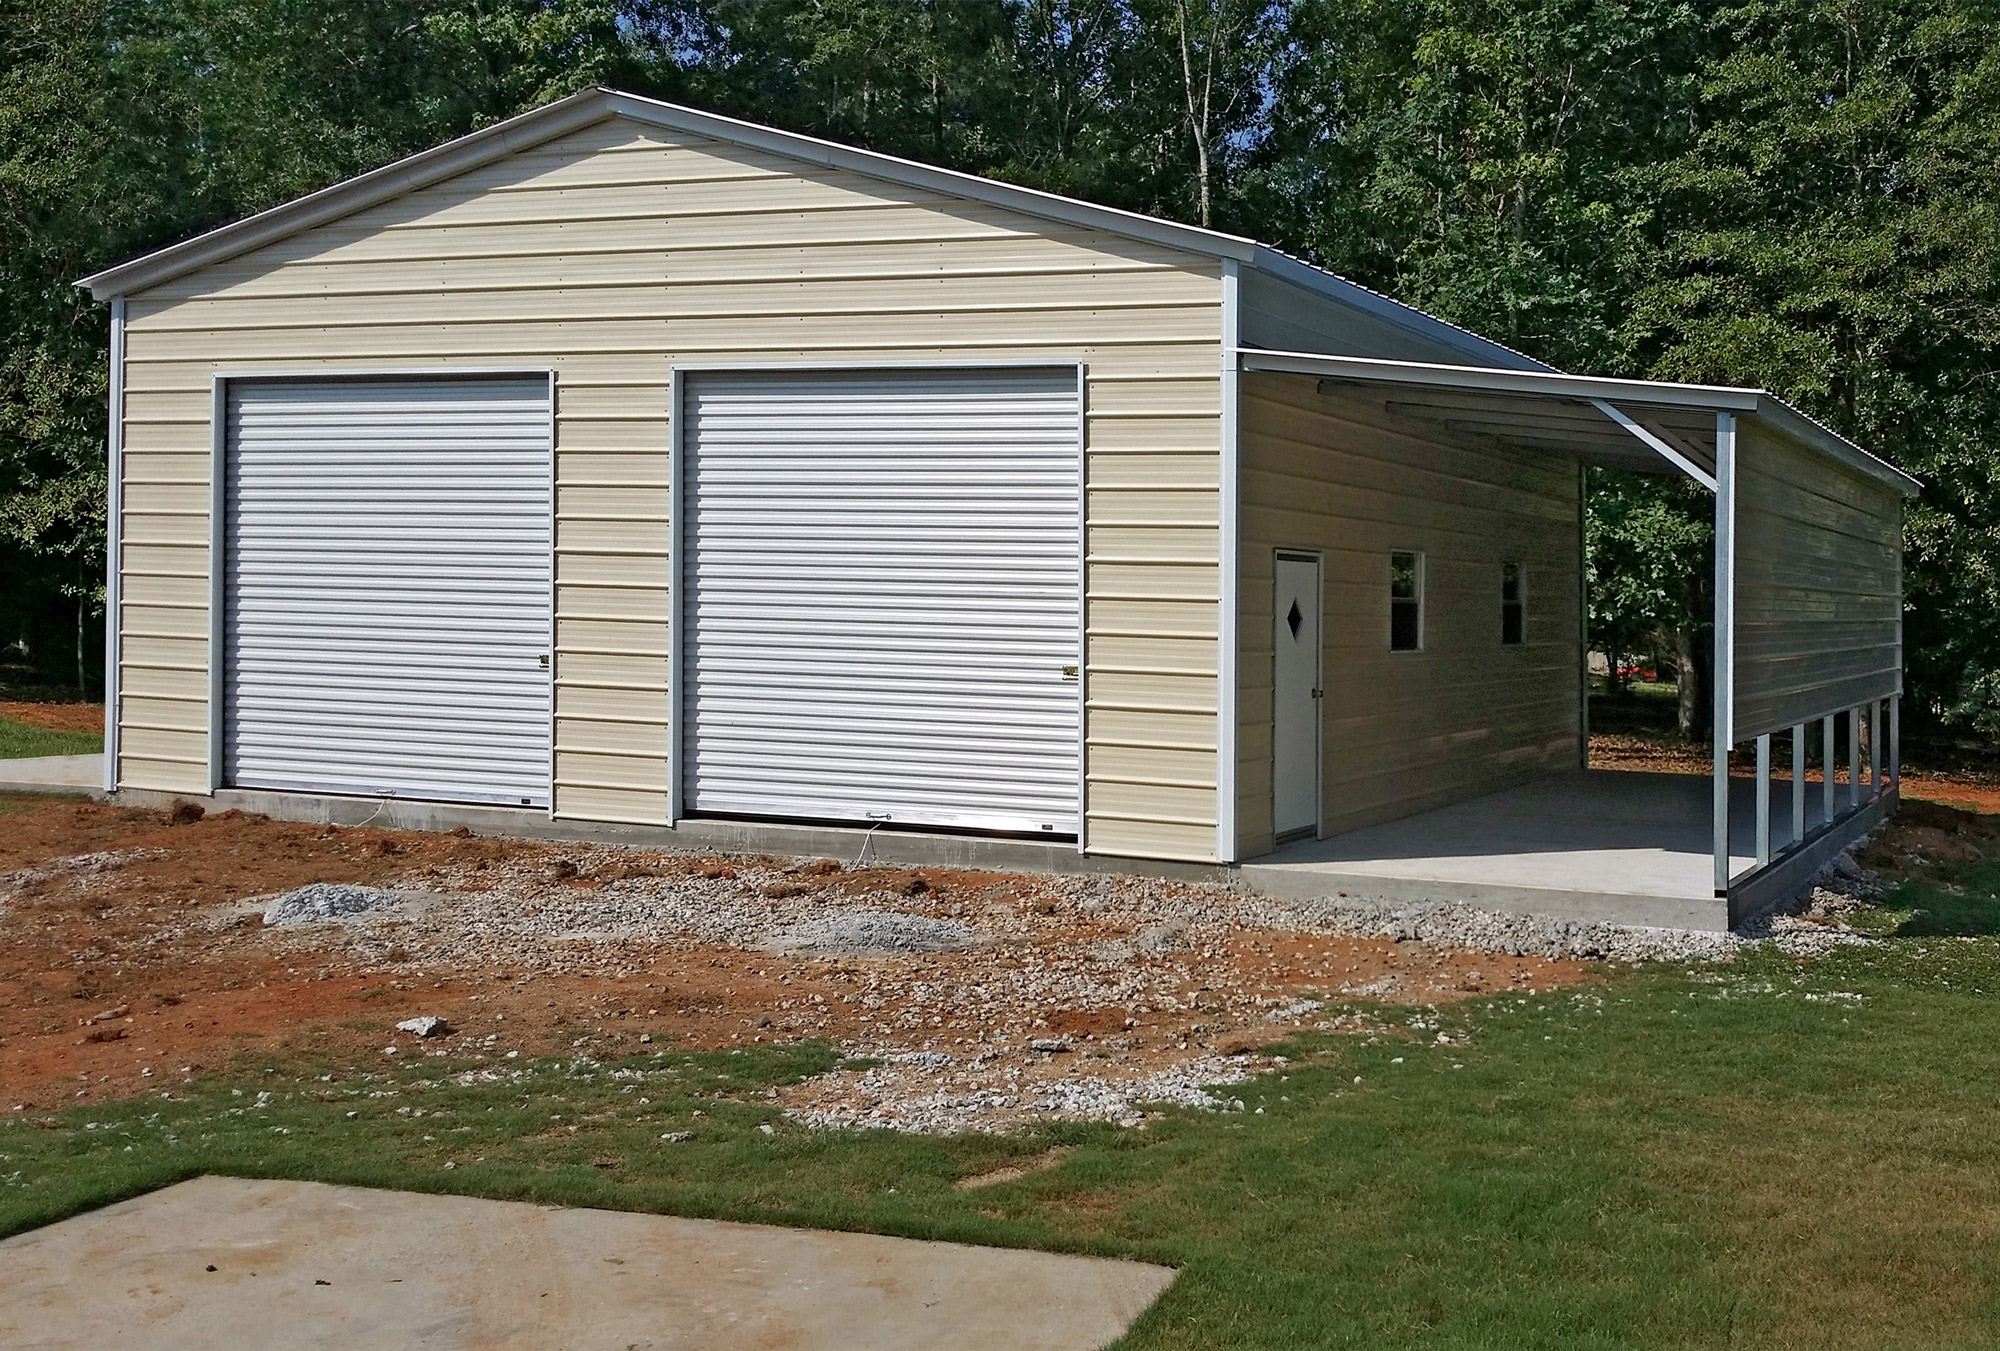 Metal Garages Carports Protect Your Car From Sun Rain